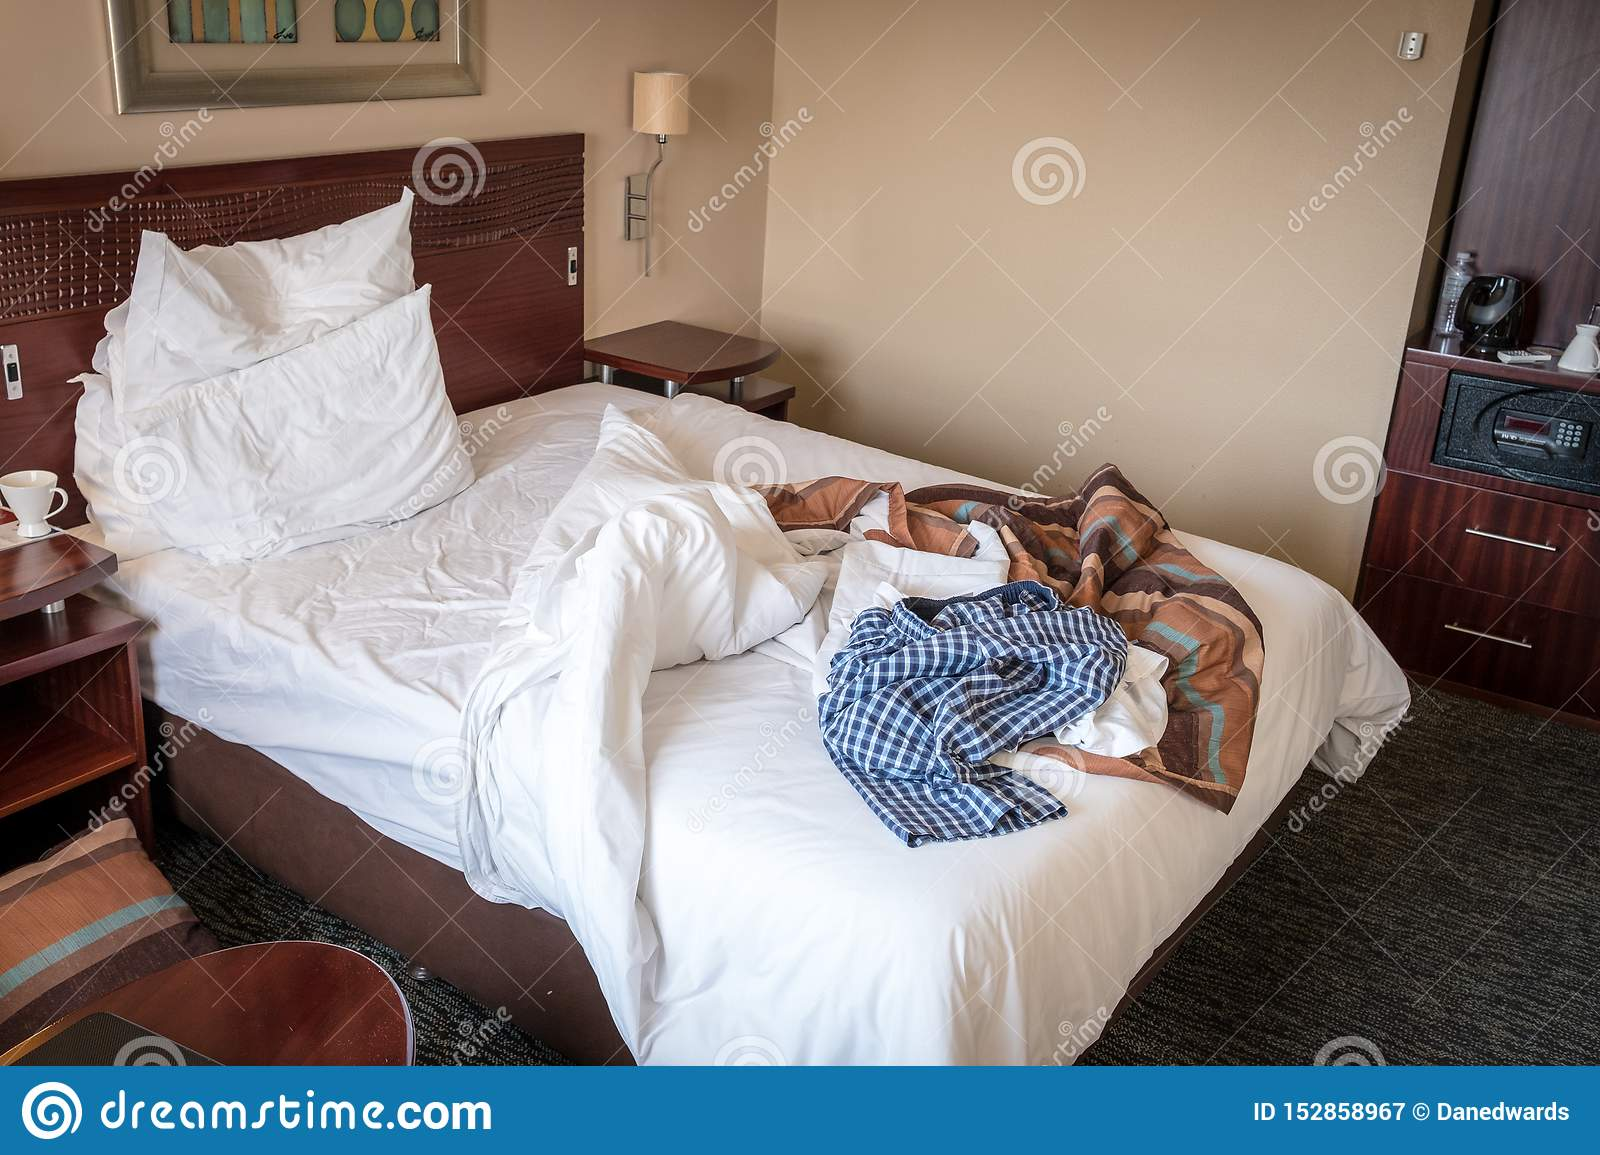 Trashed Hotel Room Bed Stock Image Image Of Clothing 152858967